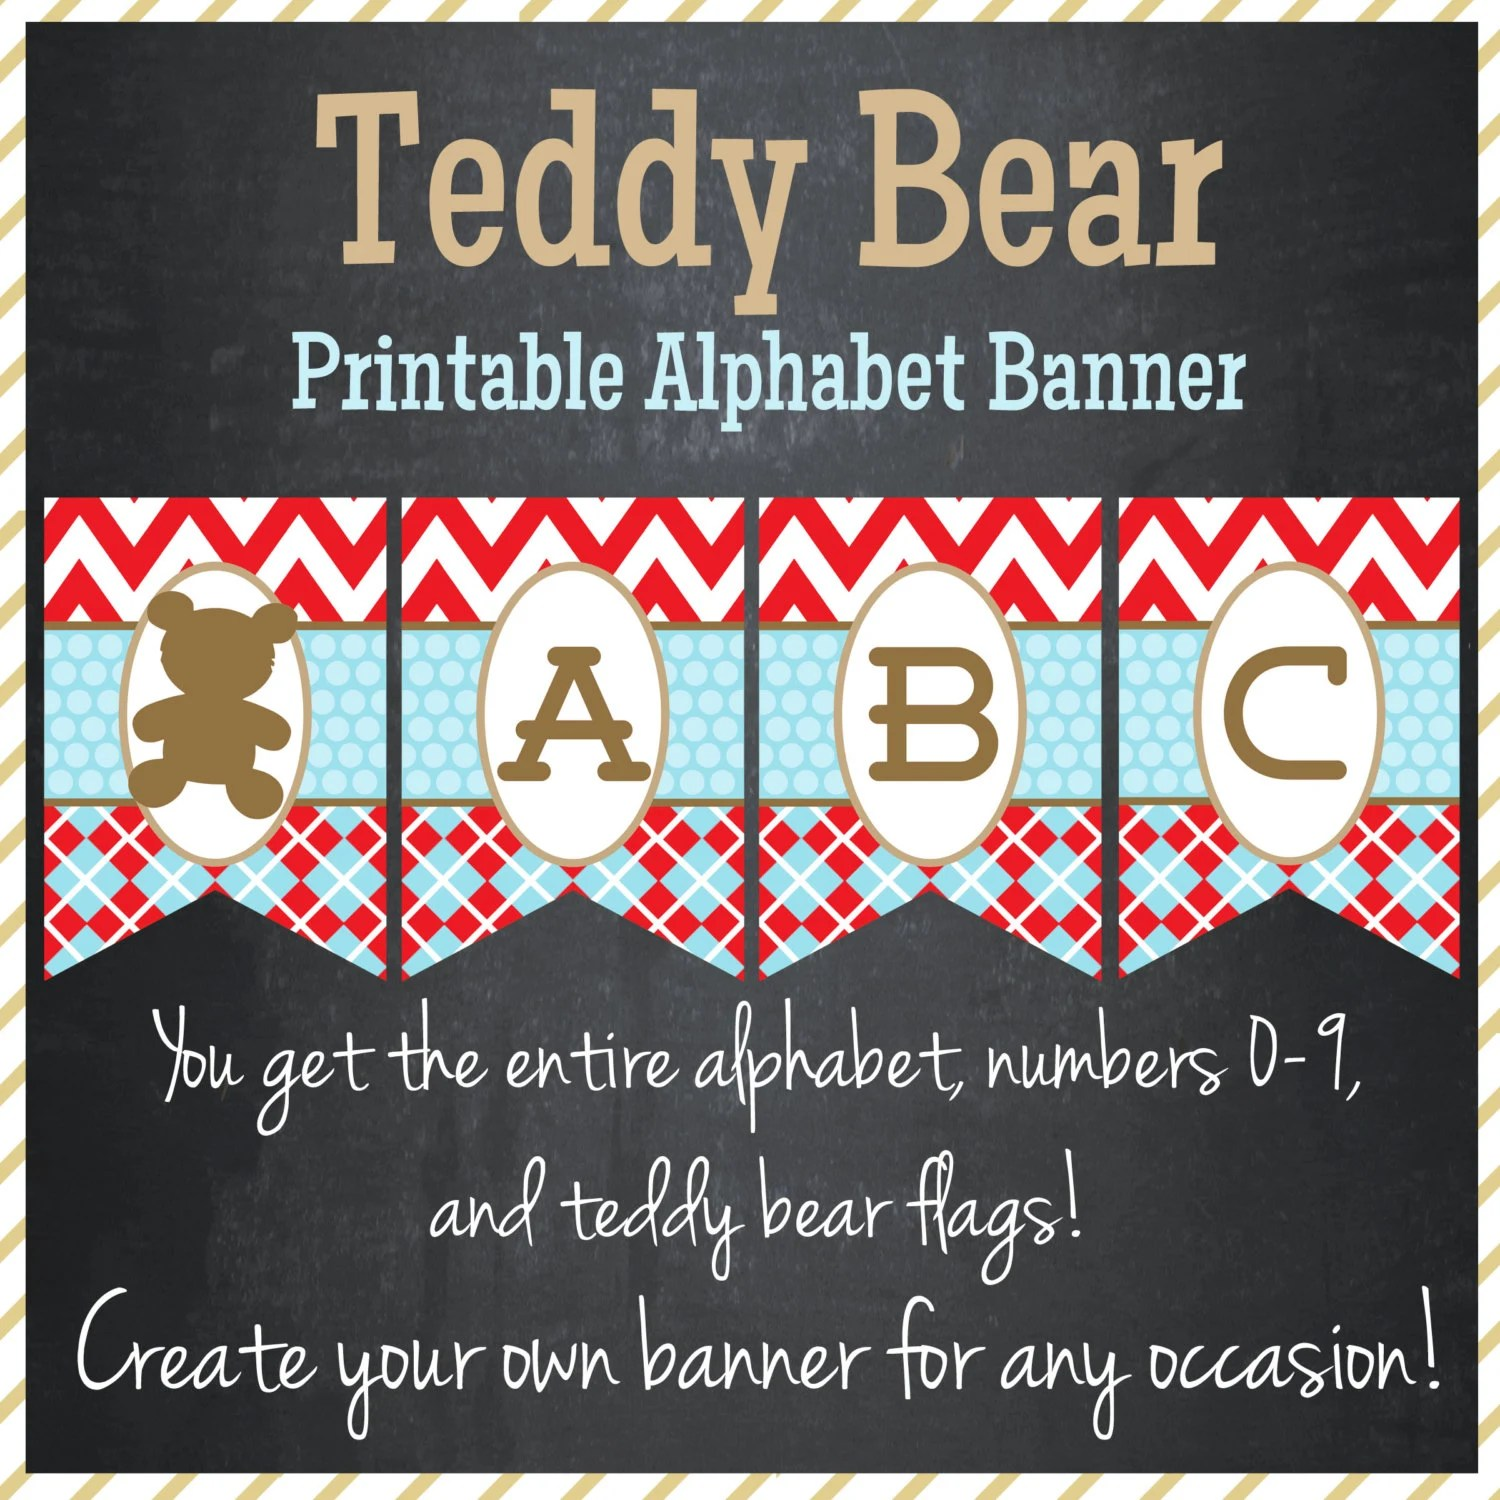 Teddy Bear Banner Printable Alphabet Instant Download